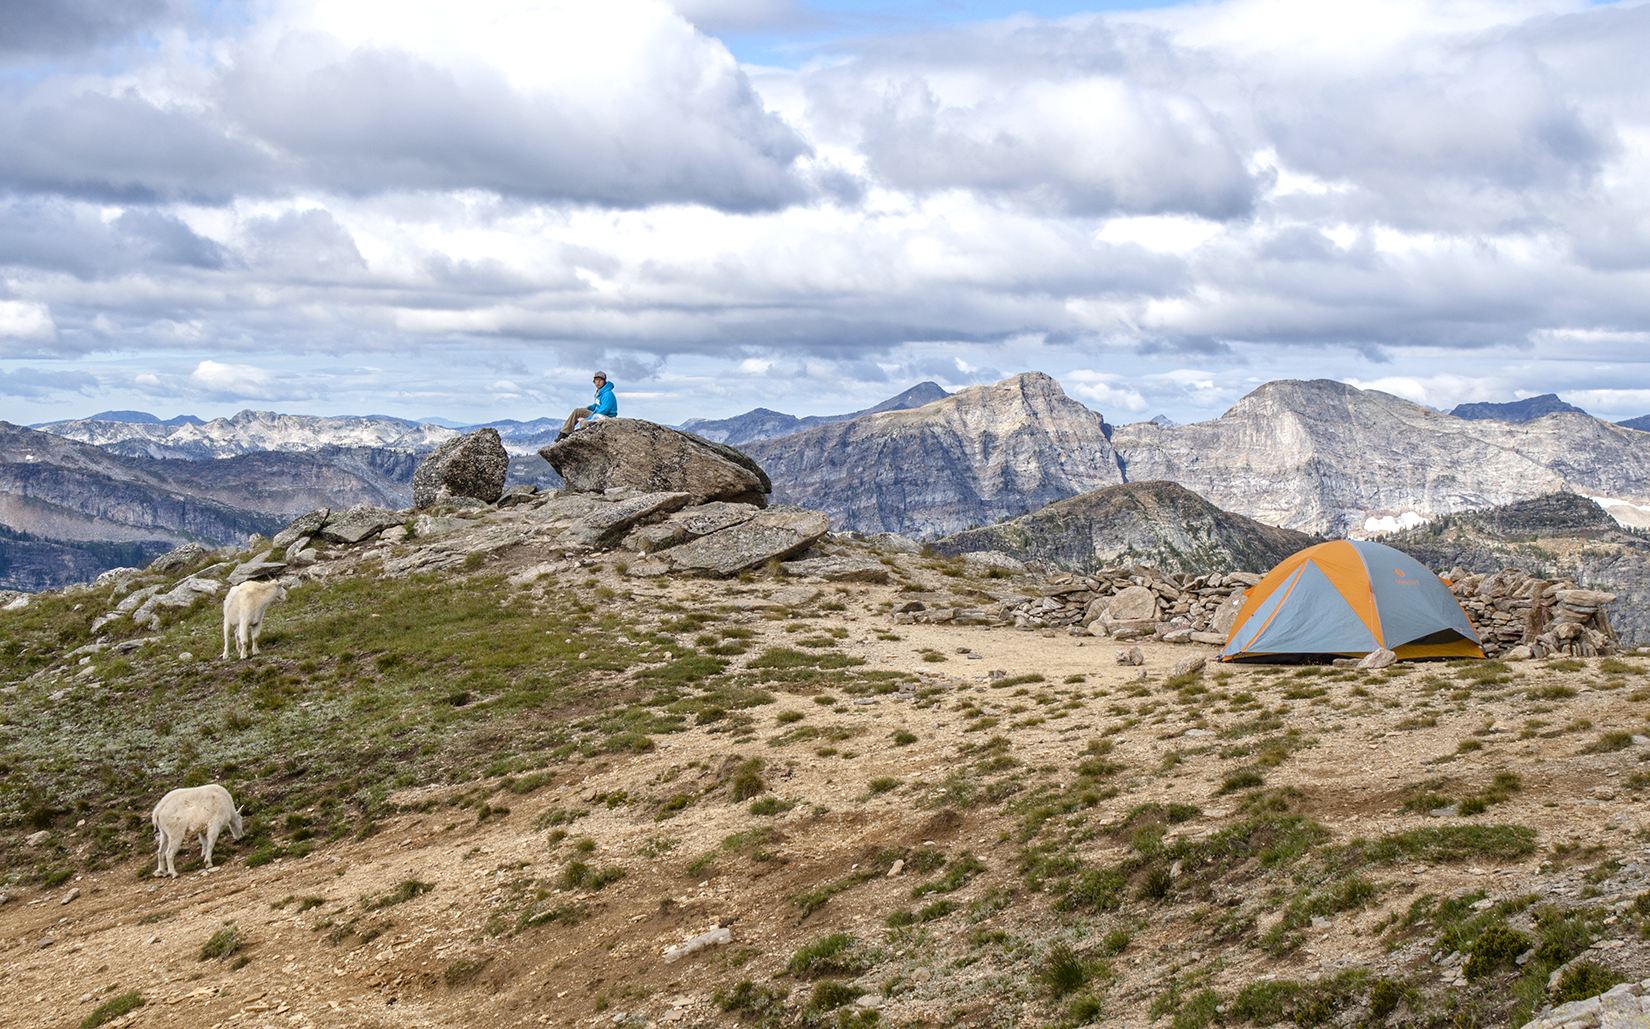 A tent is set up in a rocky area populated by two Valhalla goats.